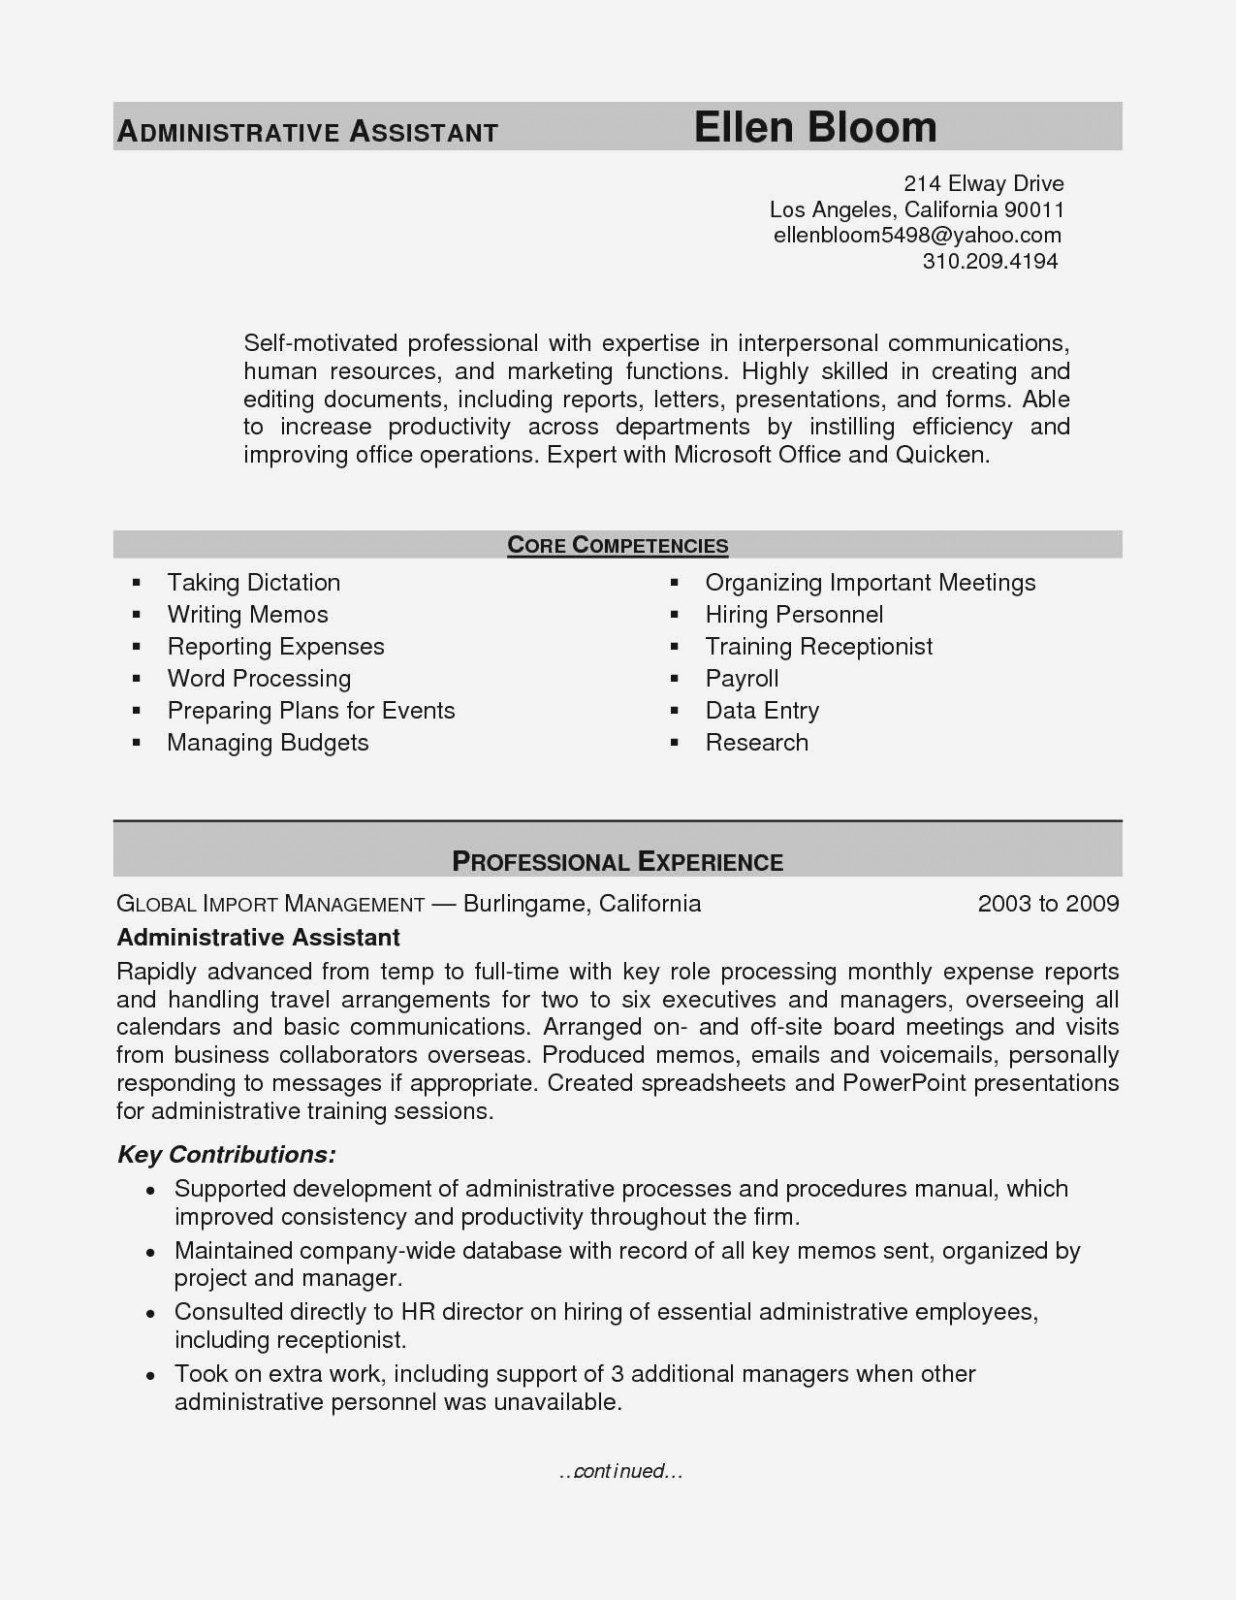 Entry Level Administrative assistant Resume Beautiful Ten Stereotypes About Entry Level Medical